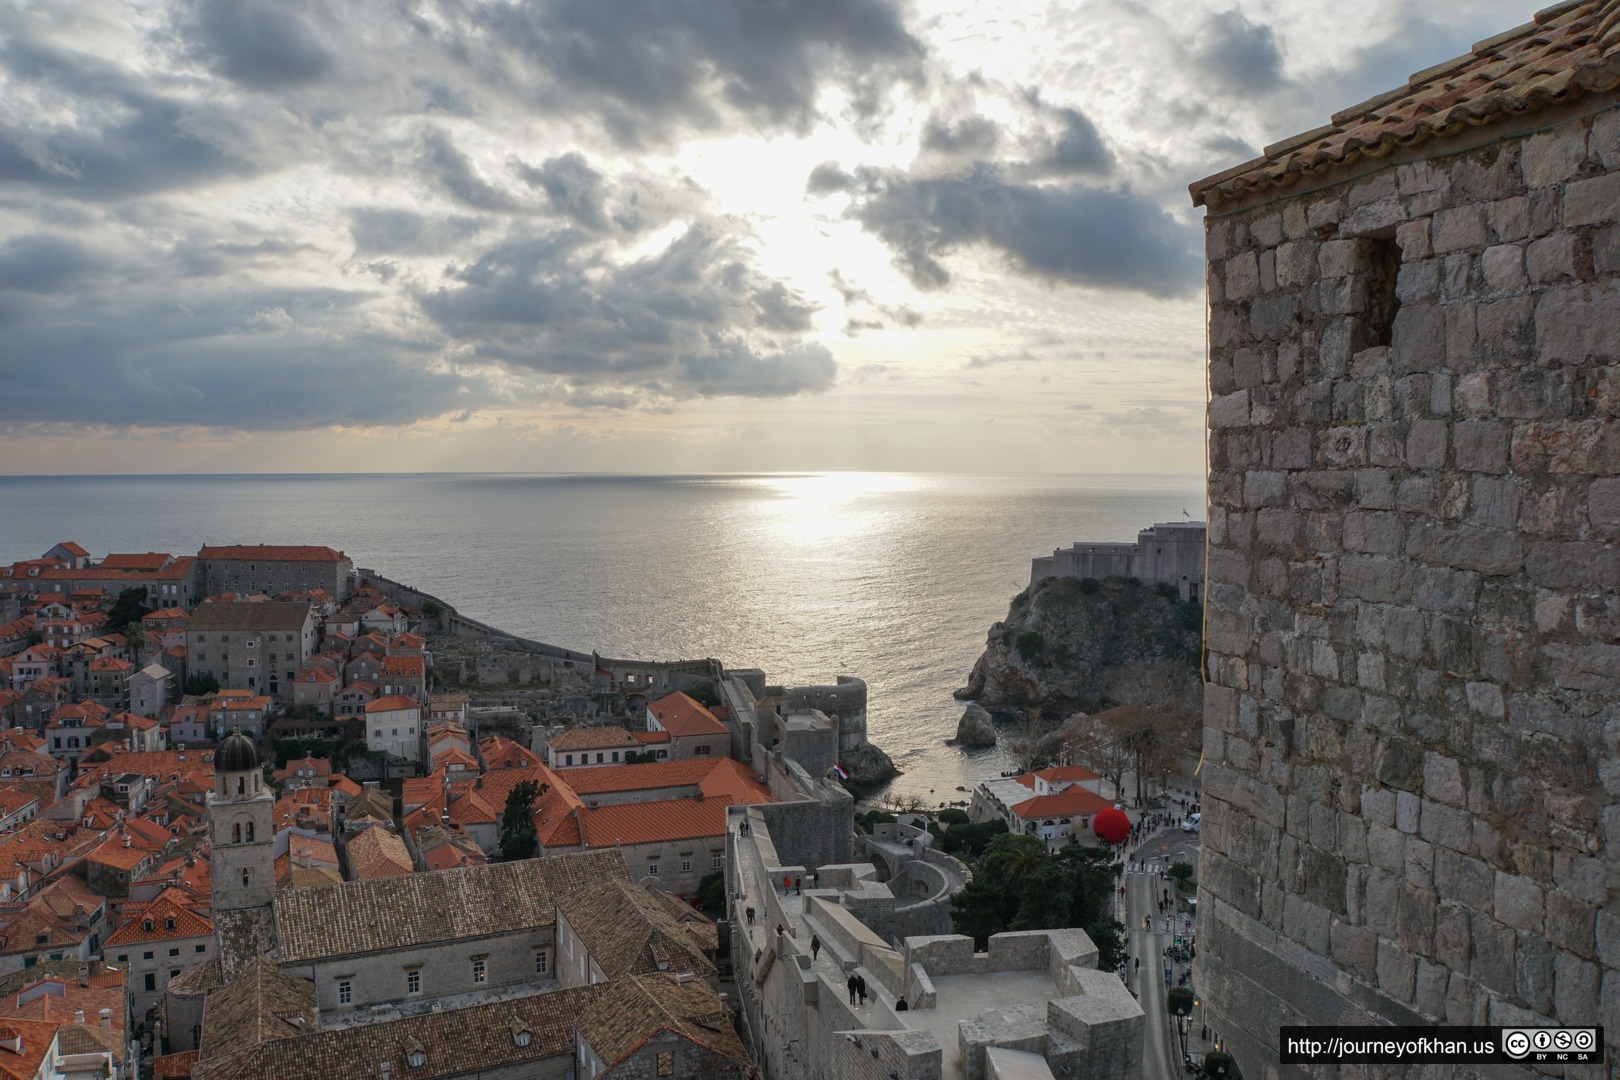 The Bay and the City of Dubrovnik